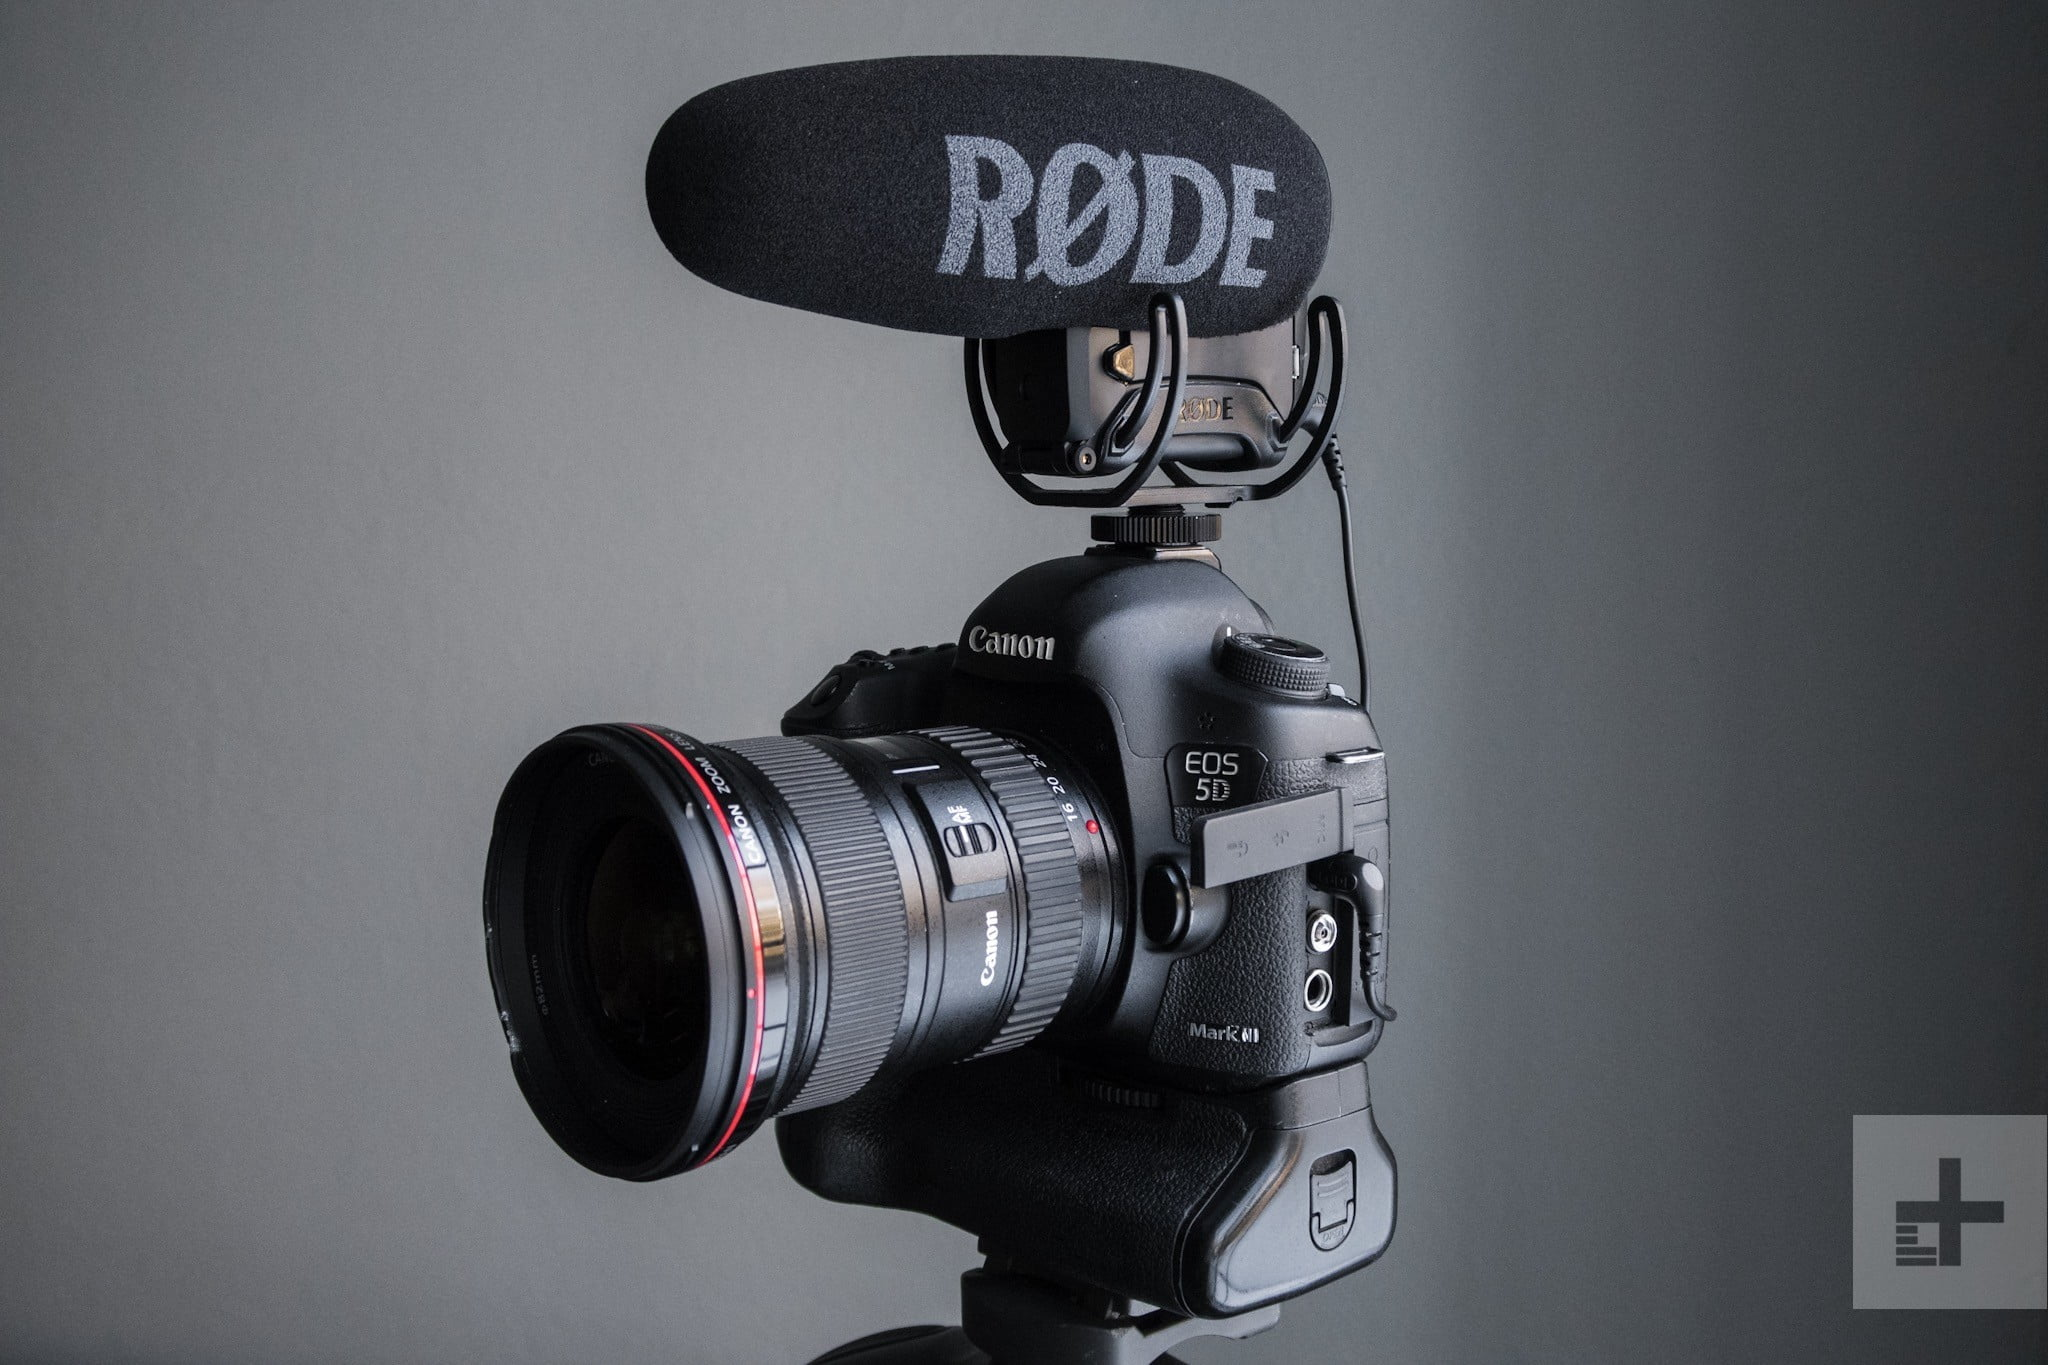 Rode Videomic Pro Review Digital Trends Microphone Rycote